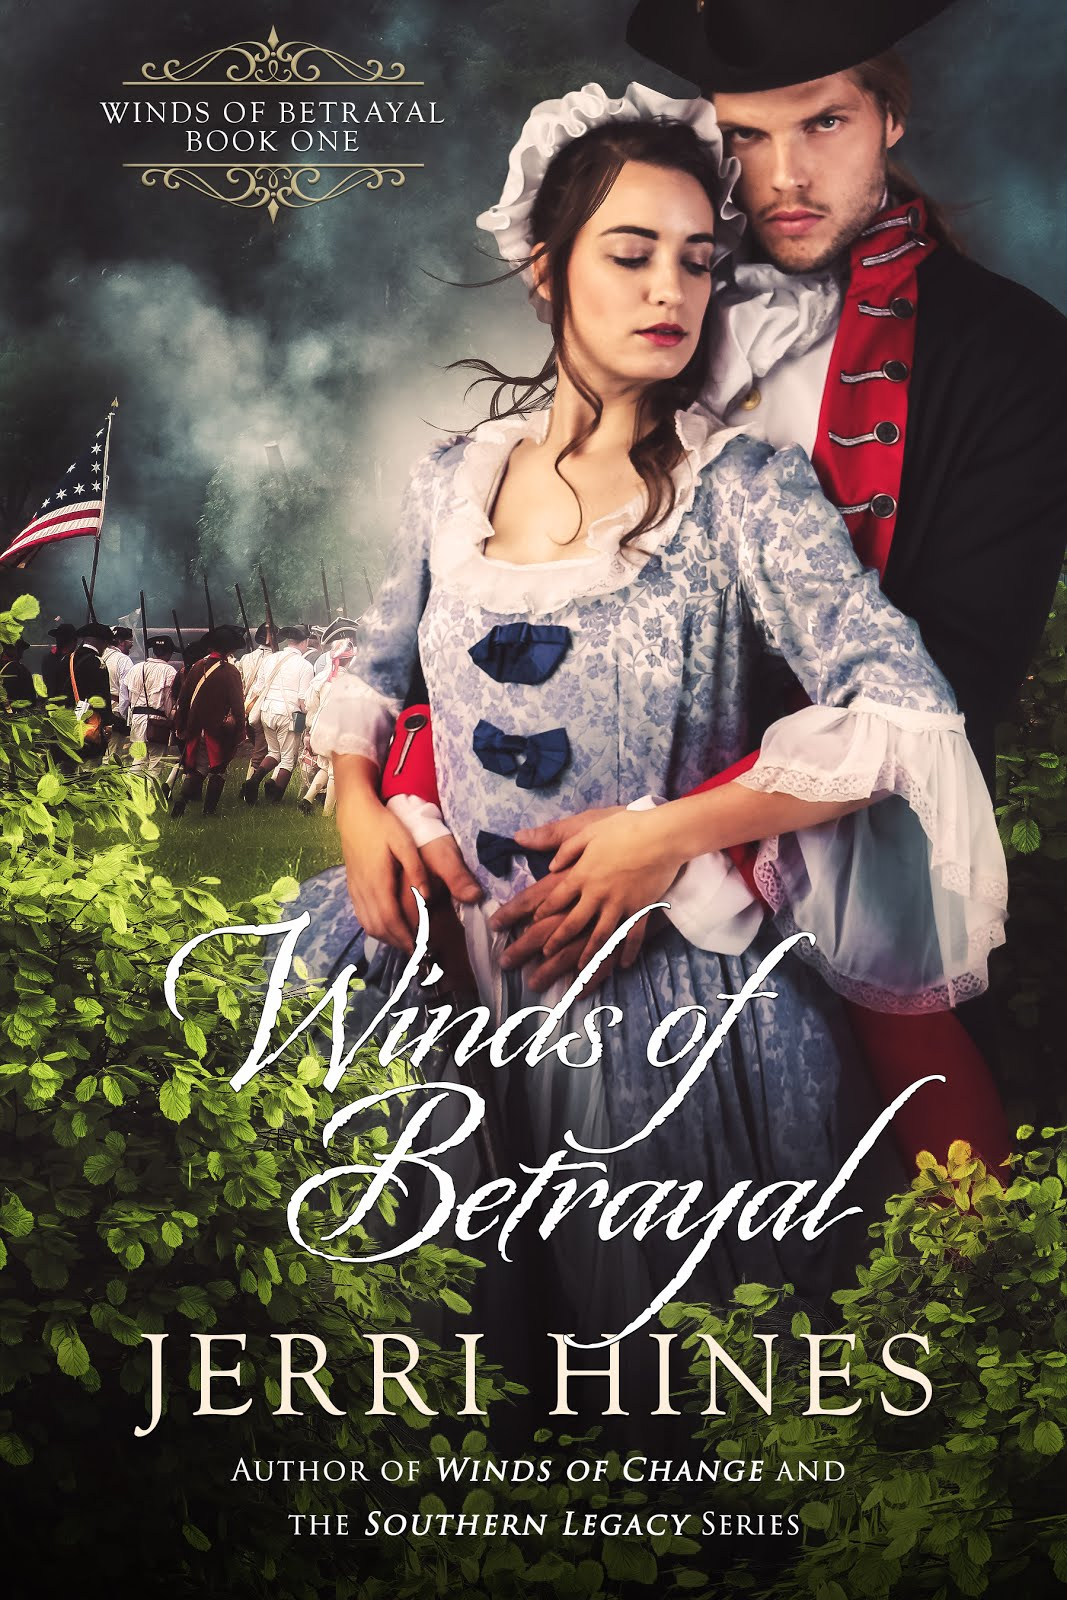 WINDS OF BETRAYAL SERIES